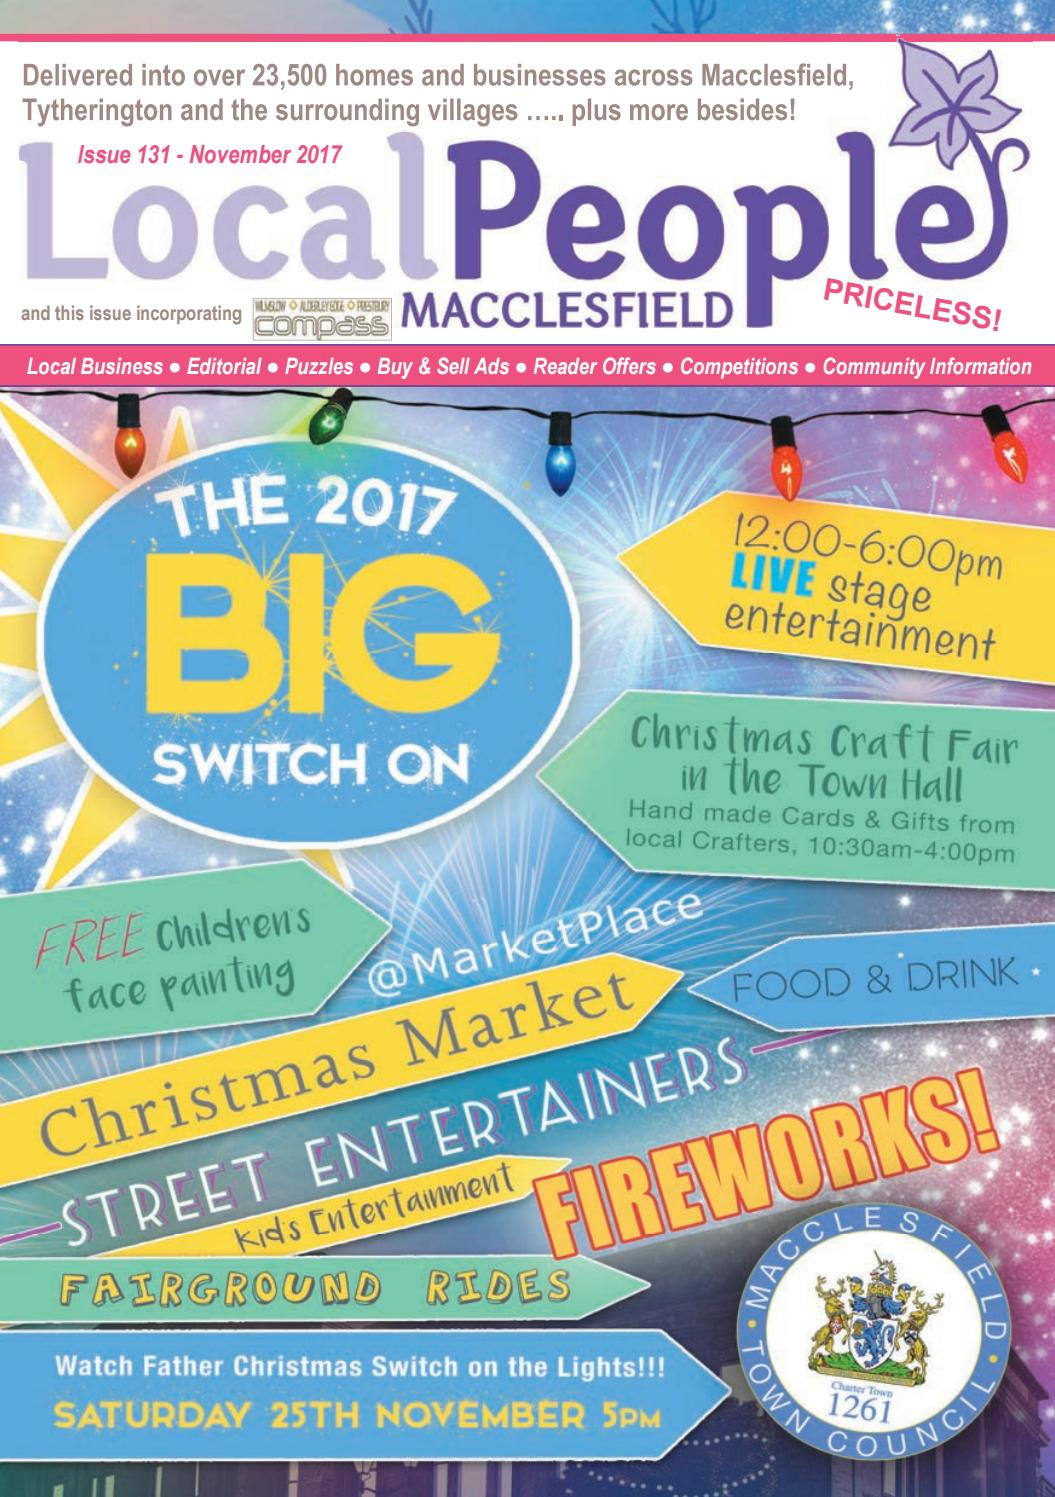 Local people macclesfield november 2017 issue by heather tebay issuu thecheapjerseys Images